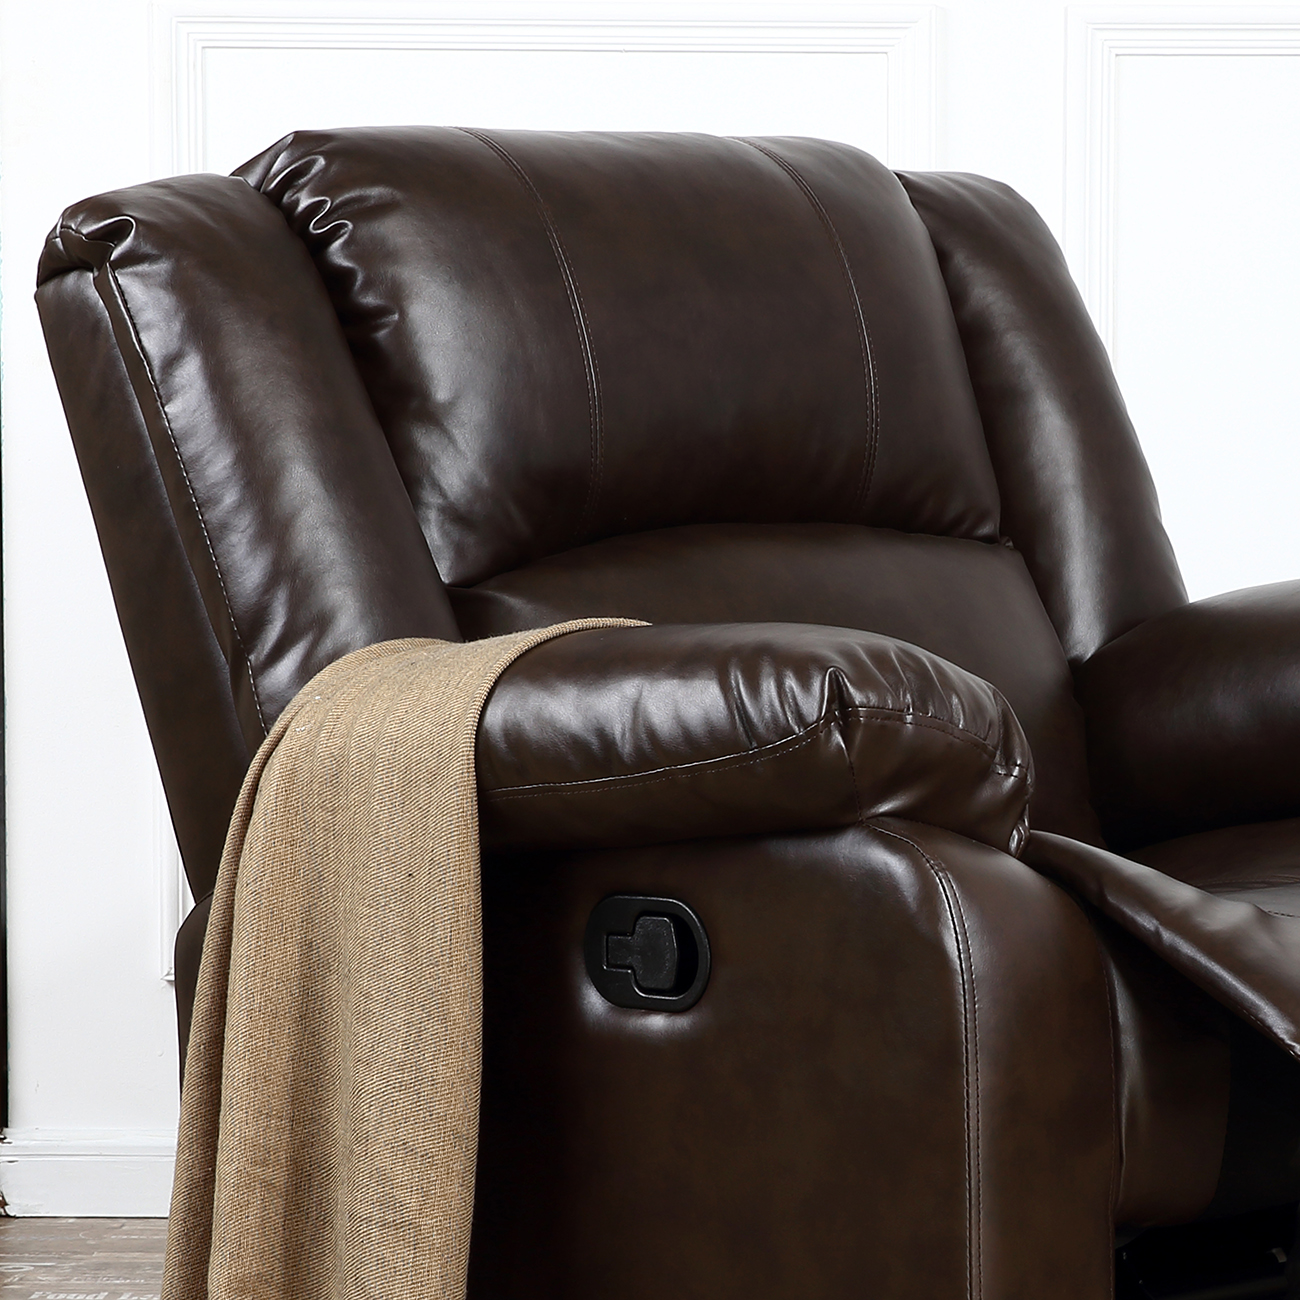 Black Living Room Furniture: Recliner Chairs For Living Room Dark Brown / Black Leather